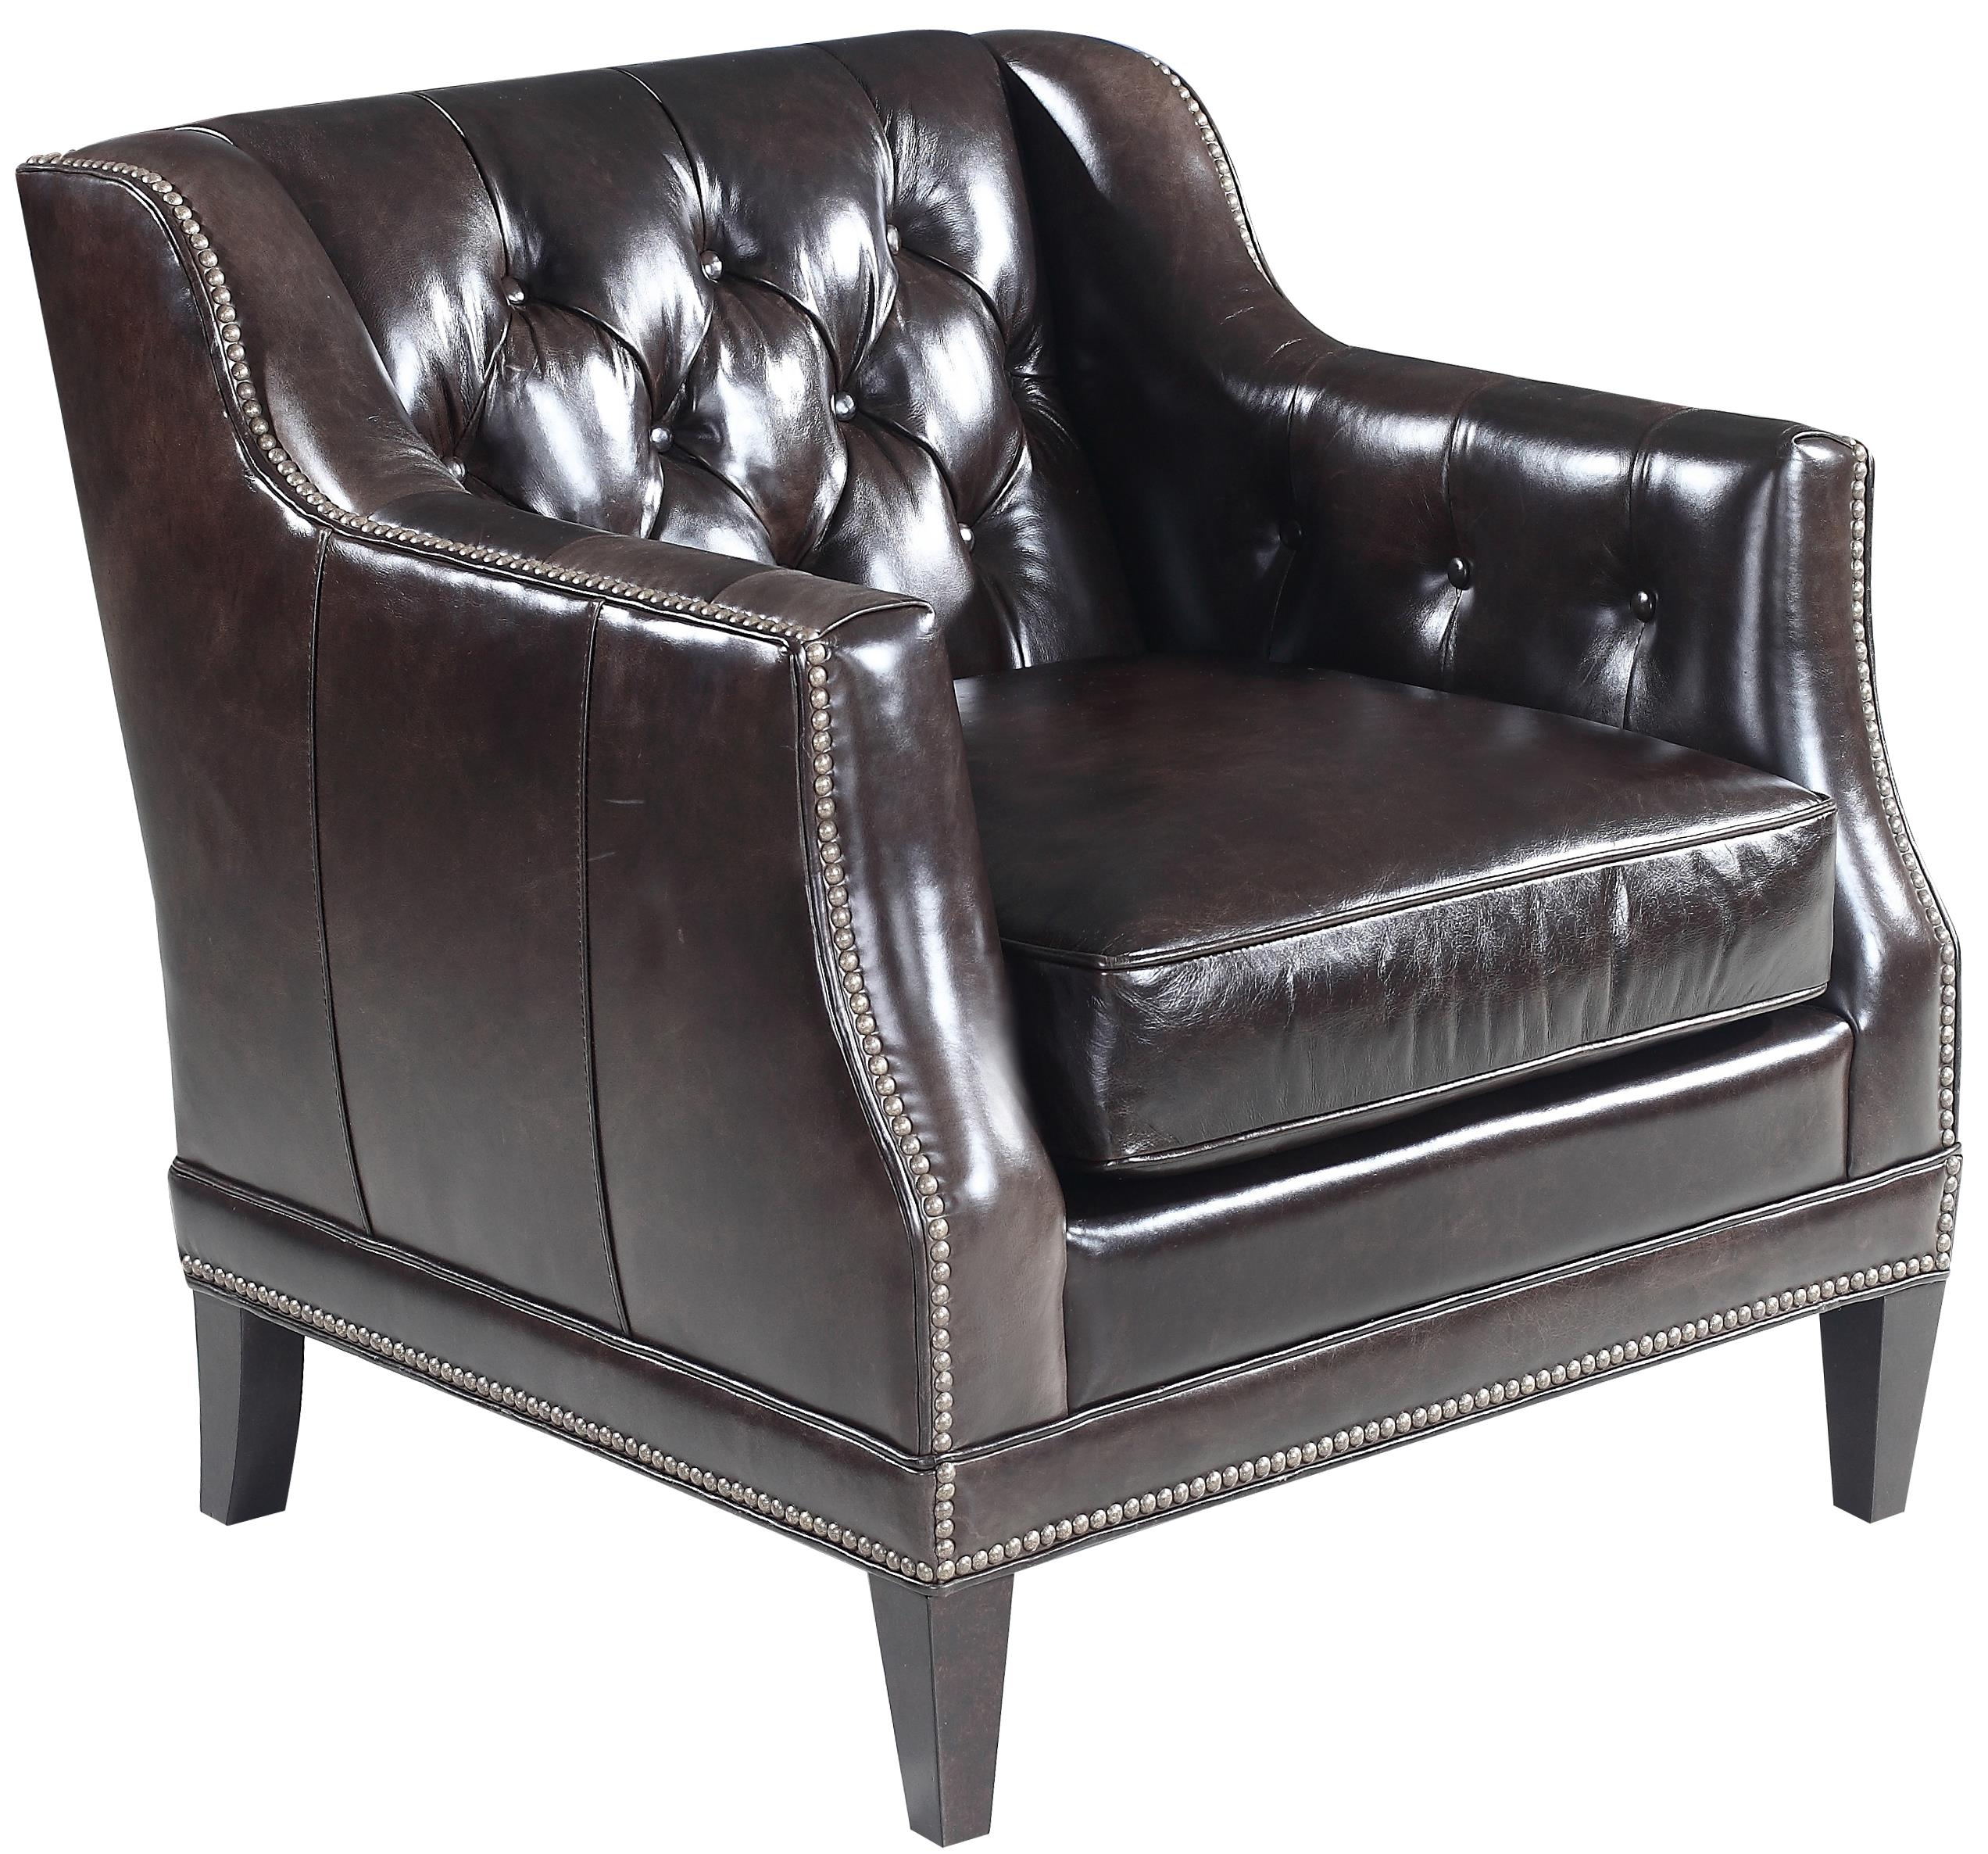 Hooker Leather Chair Hooker Furniture Ss355 Leather Stationary Chair With Track